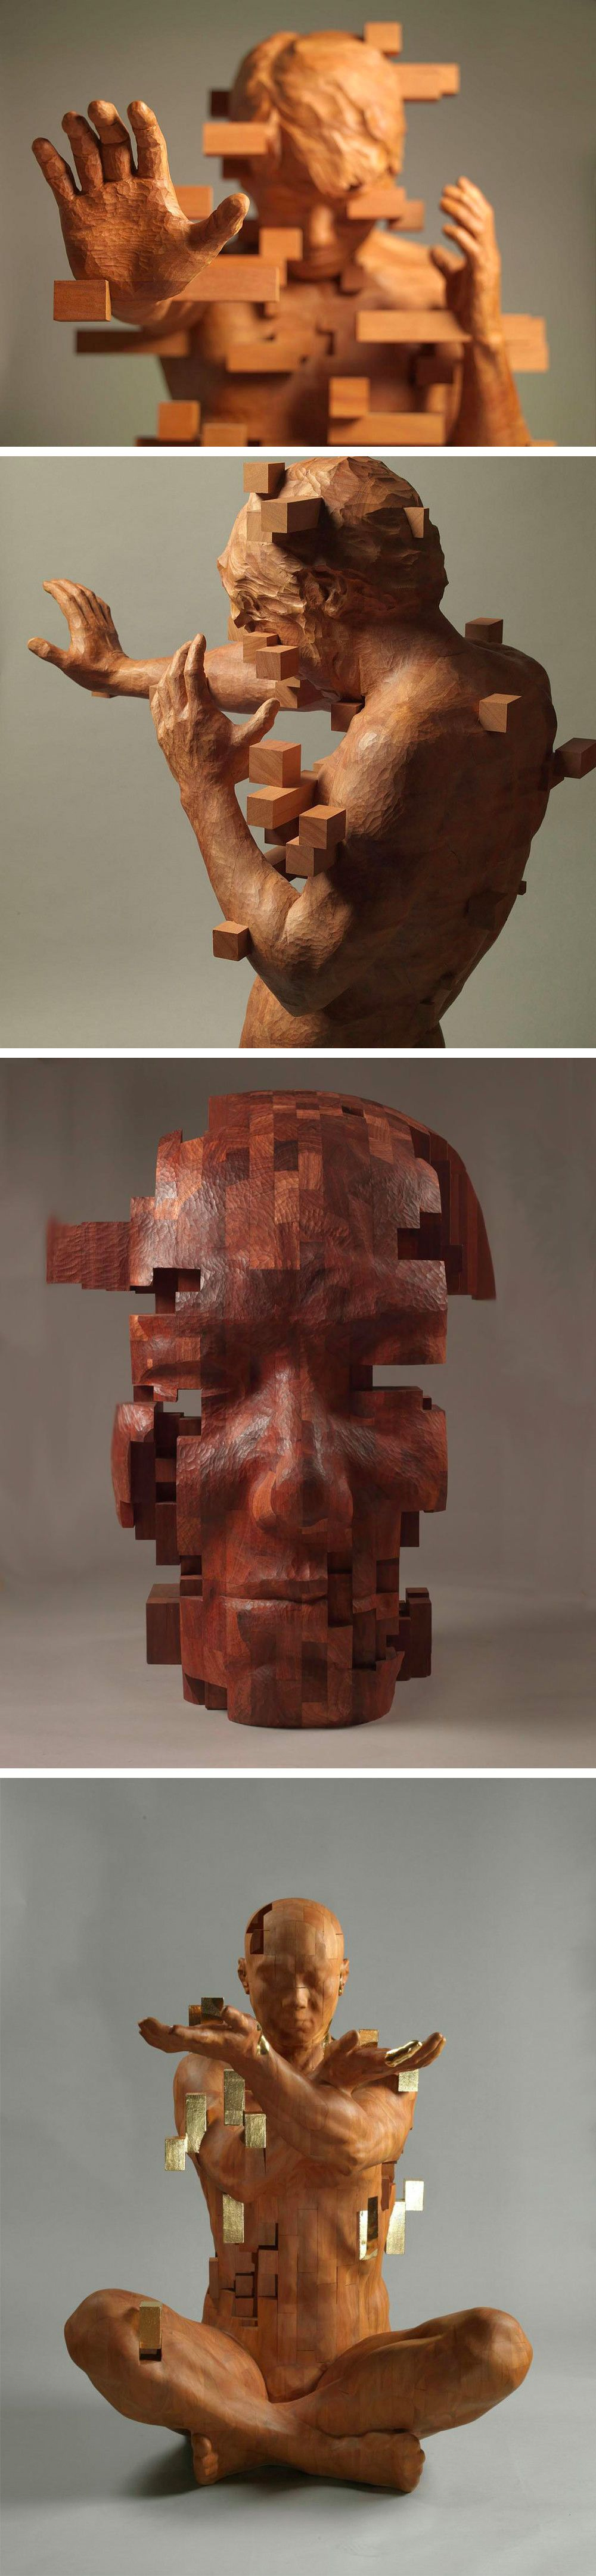 Pixelated Wood Sculptures Carved By Hsu Tung Han Character - Taiwanese sculpture uses wood to create sculptures of people effected by pixelated glitches